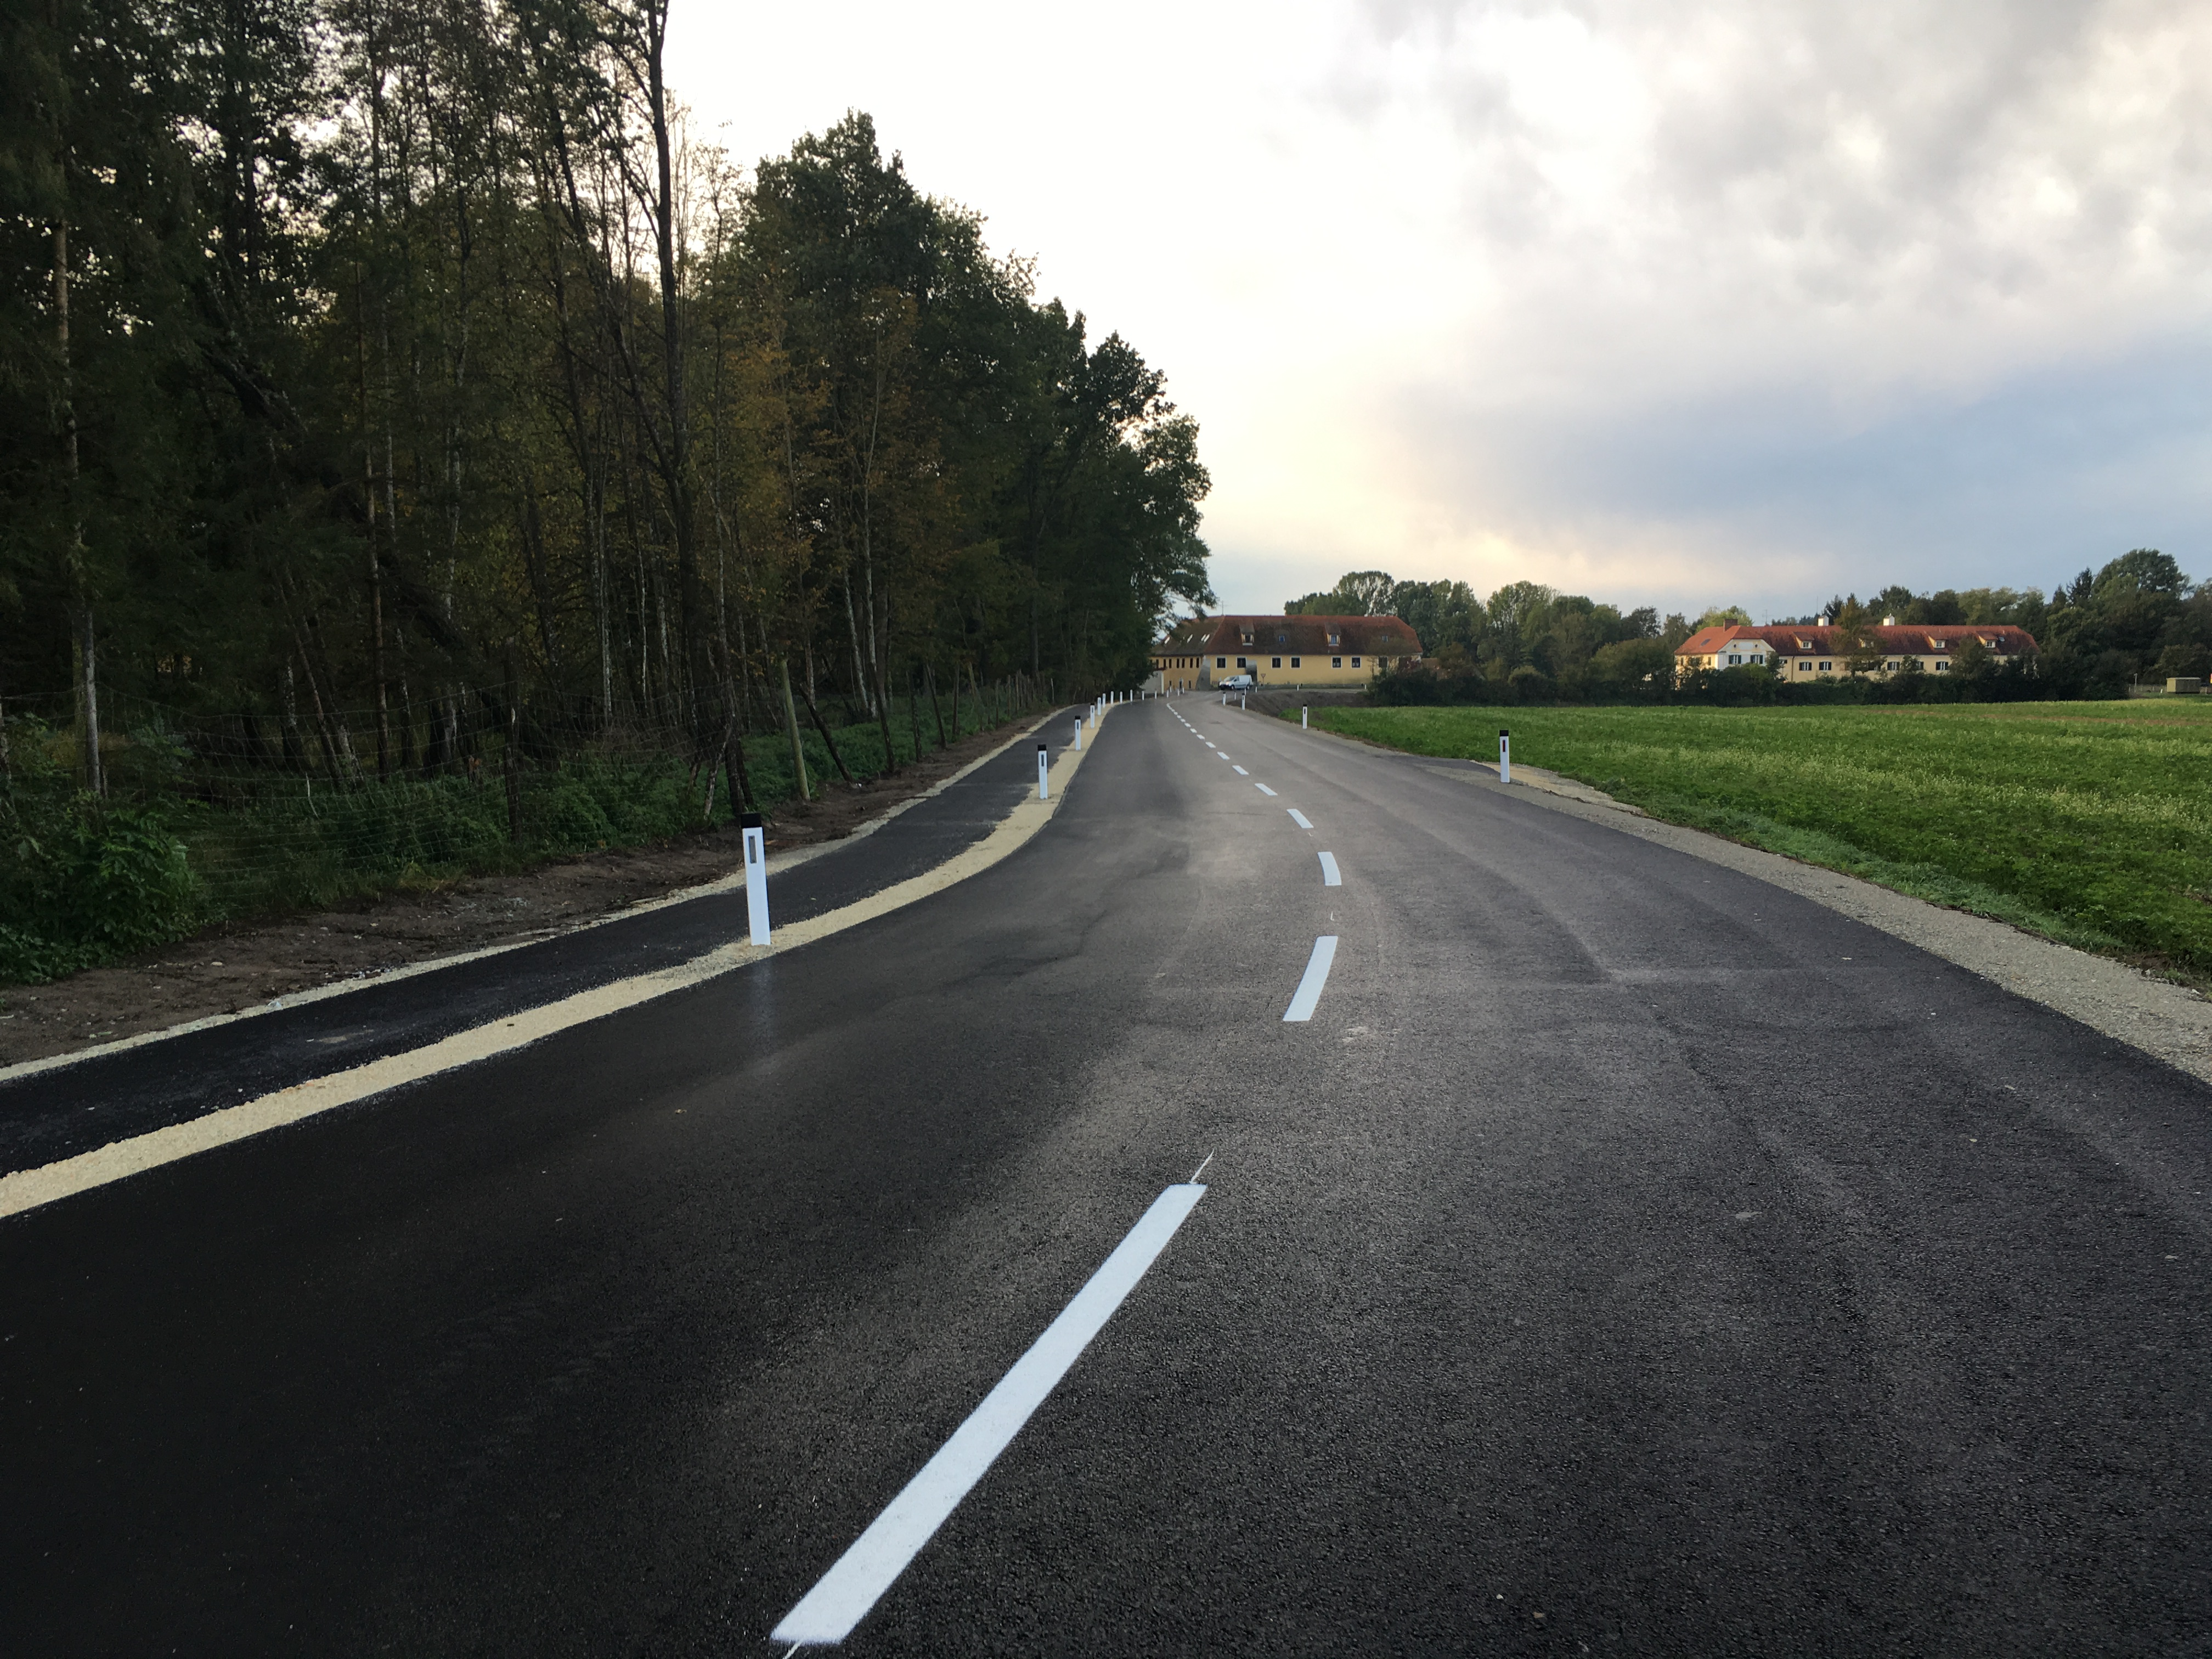 Torteichstraße, Neudau - Road and bridge construction